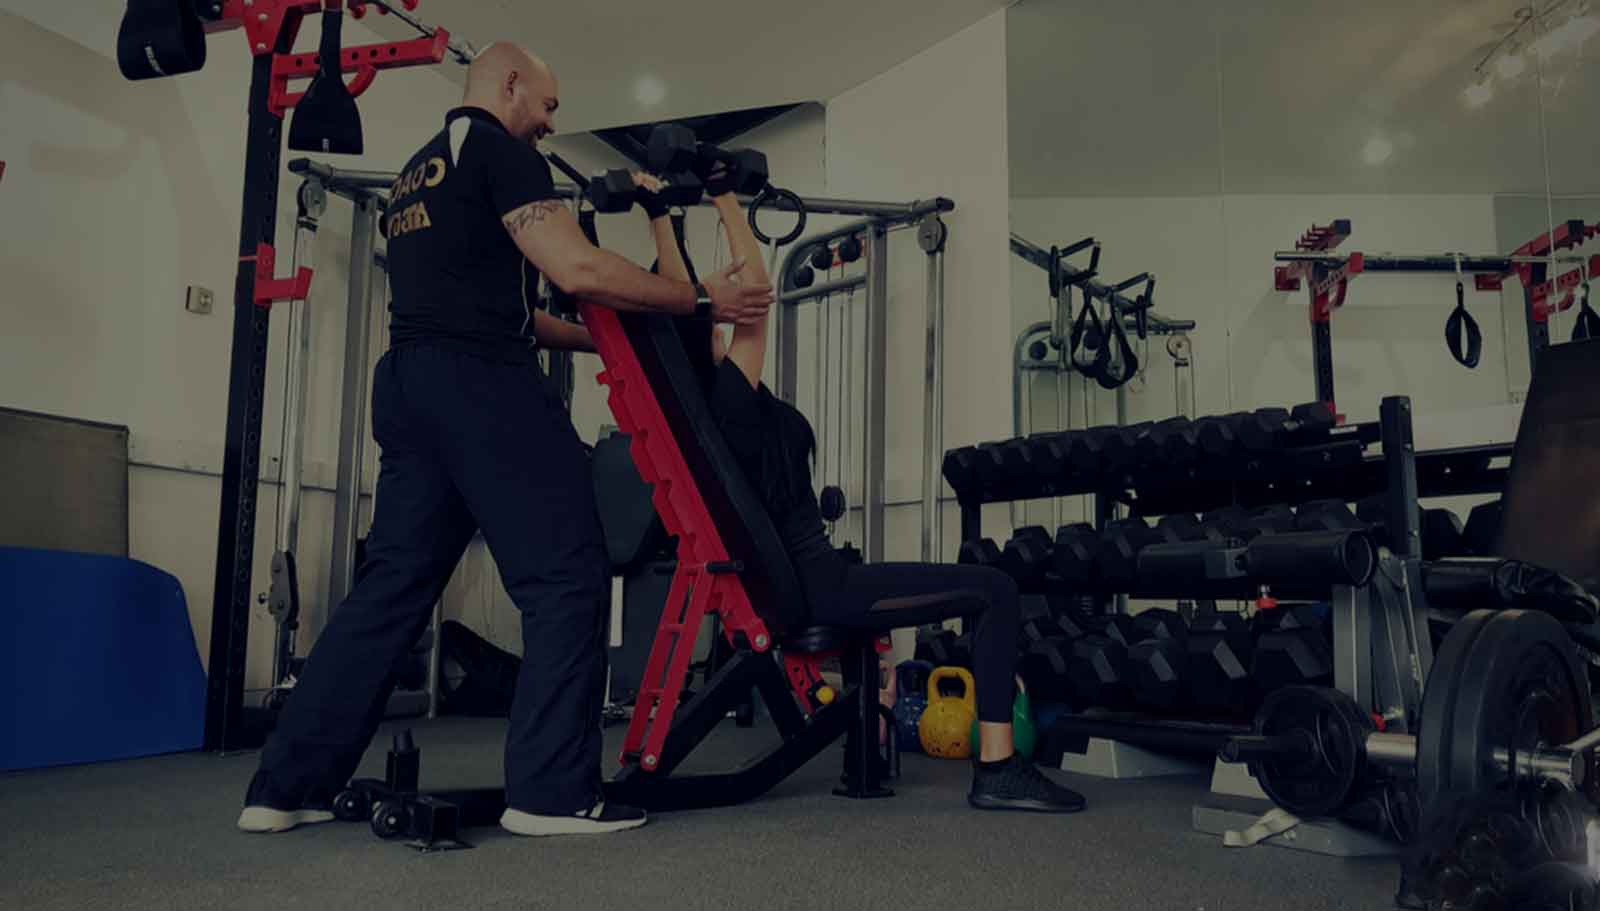 The ABS Gym - Personal Training Dublin - Training for Beginners